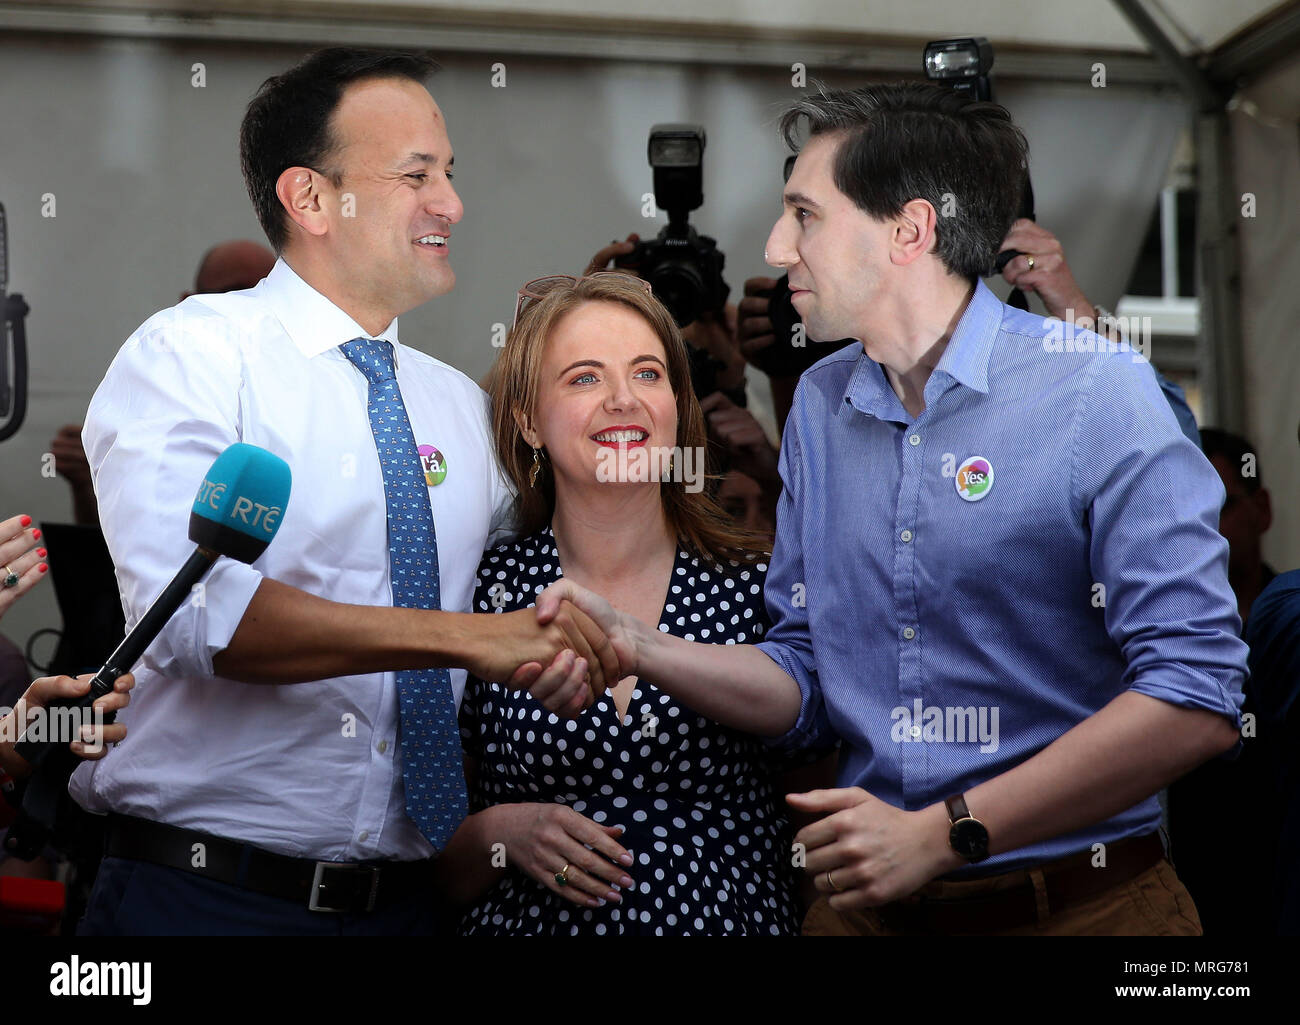 An Taoiseach Leo Varadkar (left), Minister for Health Simon Harris (right) and Senator Catherine Noone at Dublin Castle for the results of the referendum on the 8th Amendment of the Irish Constitution which prohibits abortions unless a mother's life is in danger. Picture date: Saturday May 26, 2018. See PA story IRISH Abortion. Photo credit should read: Brian Lawless/PA Wire - Stock Image